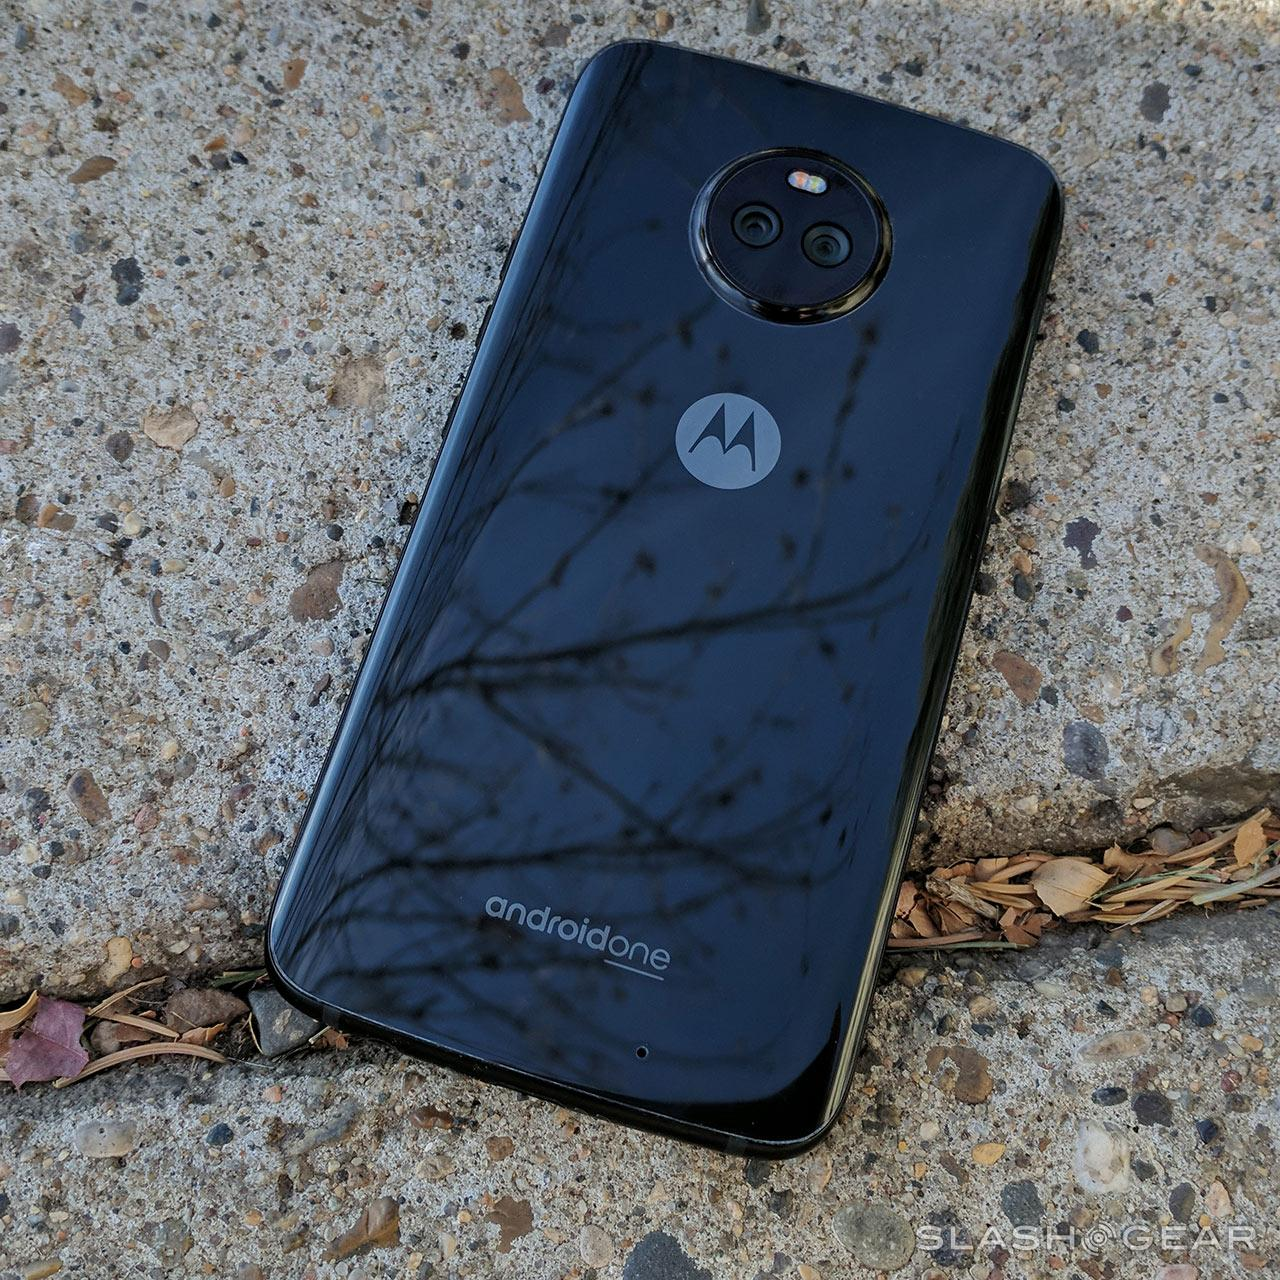 Moto X4 Review : Android One champions the midrange for